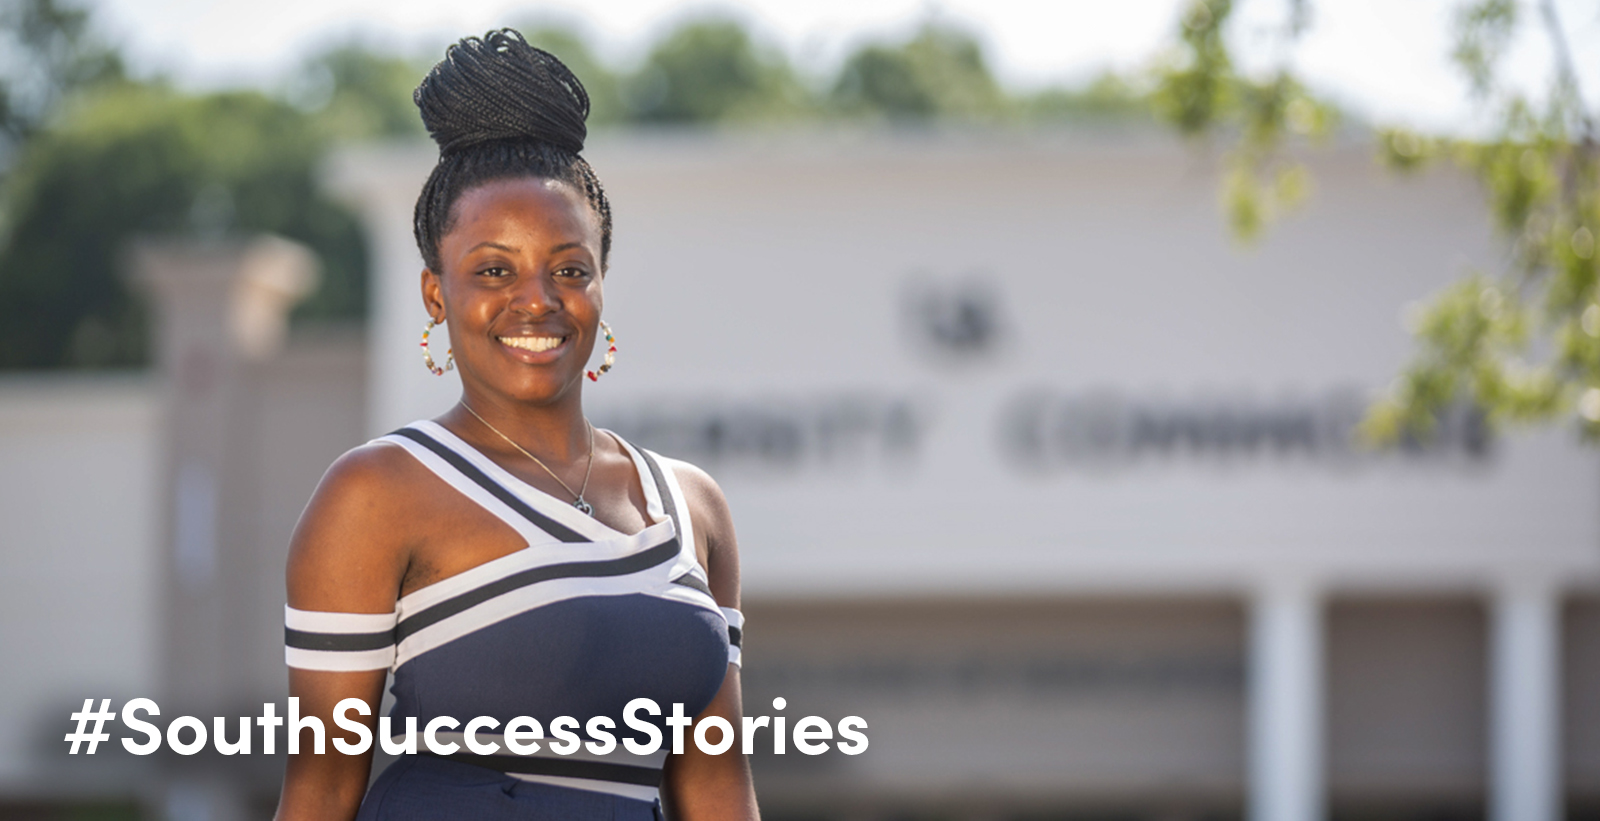 South Alabama alumna Tiffany Whitfield started the Tiffany Whitfield Scholarship for Undergraduate Students to help others pursue a degree at South. Whitfield teaches at the American Creativity Academy for Boys in Kuwait.